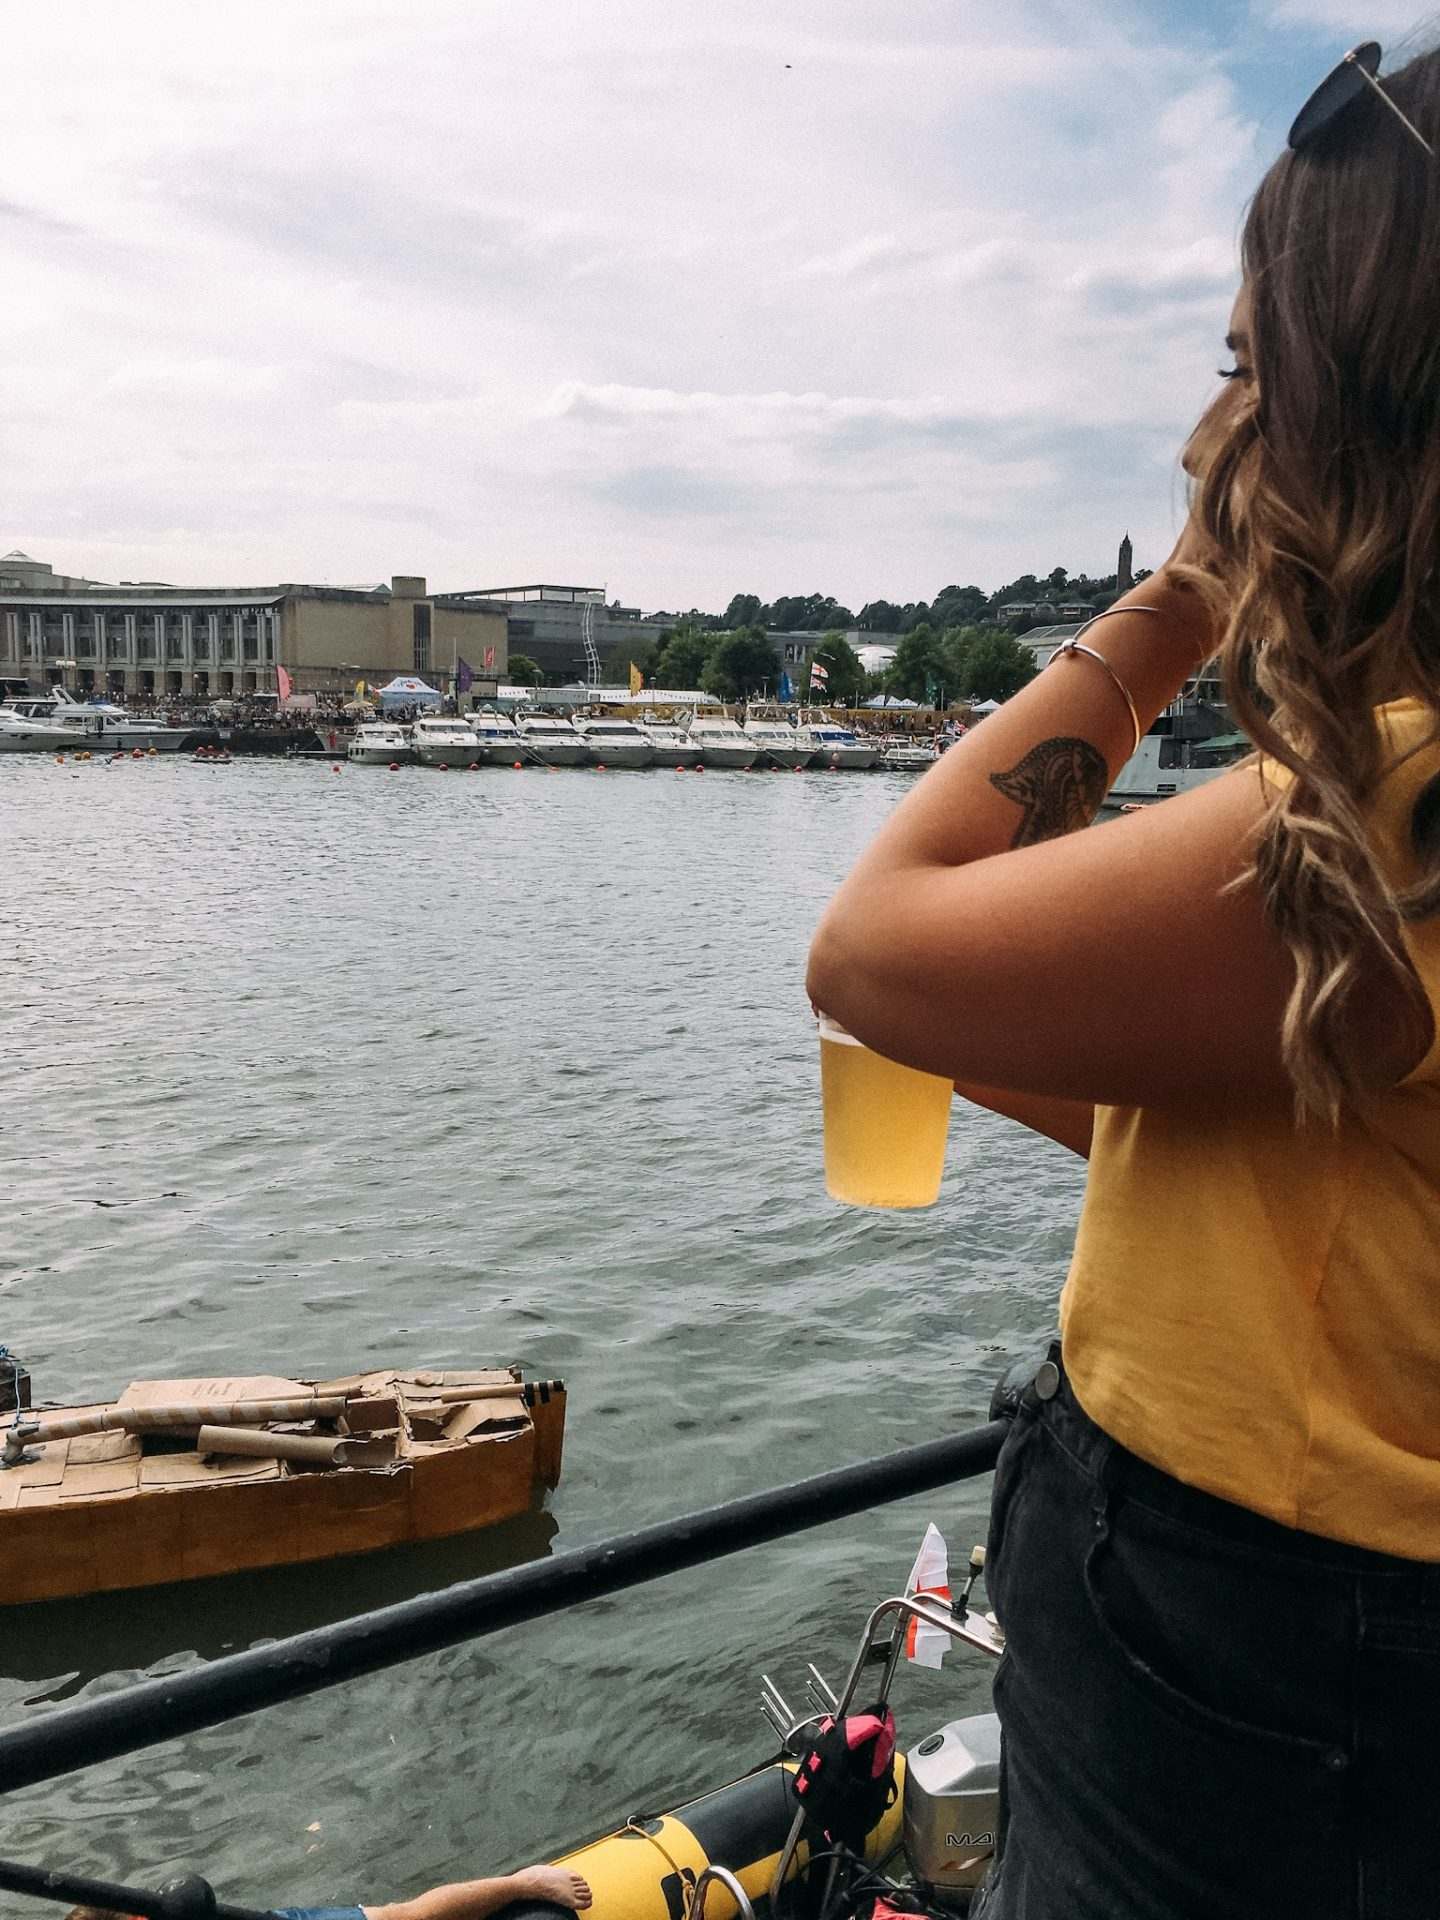 Bristol harbourfest - Bristol summer events